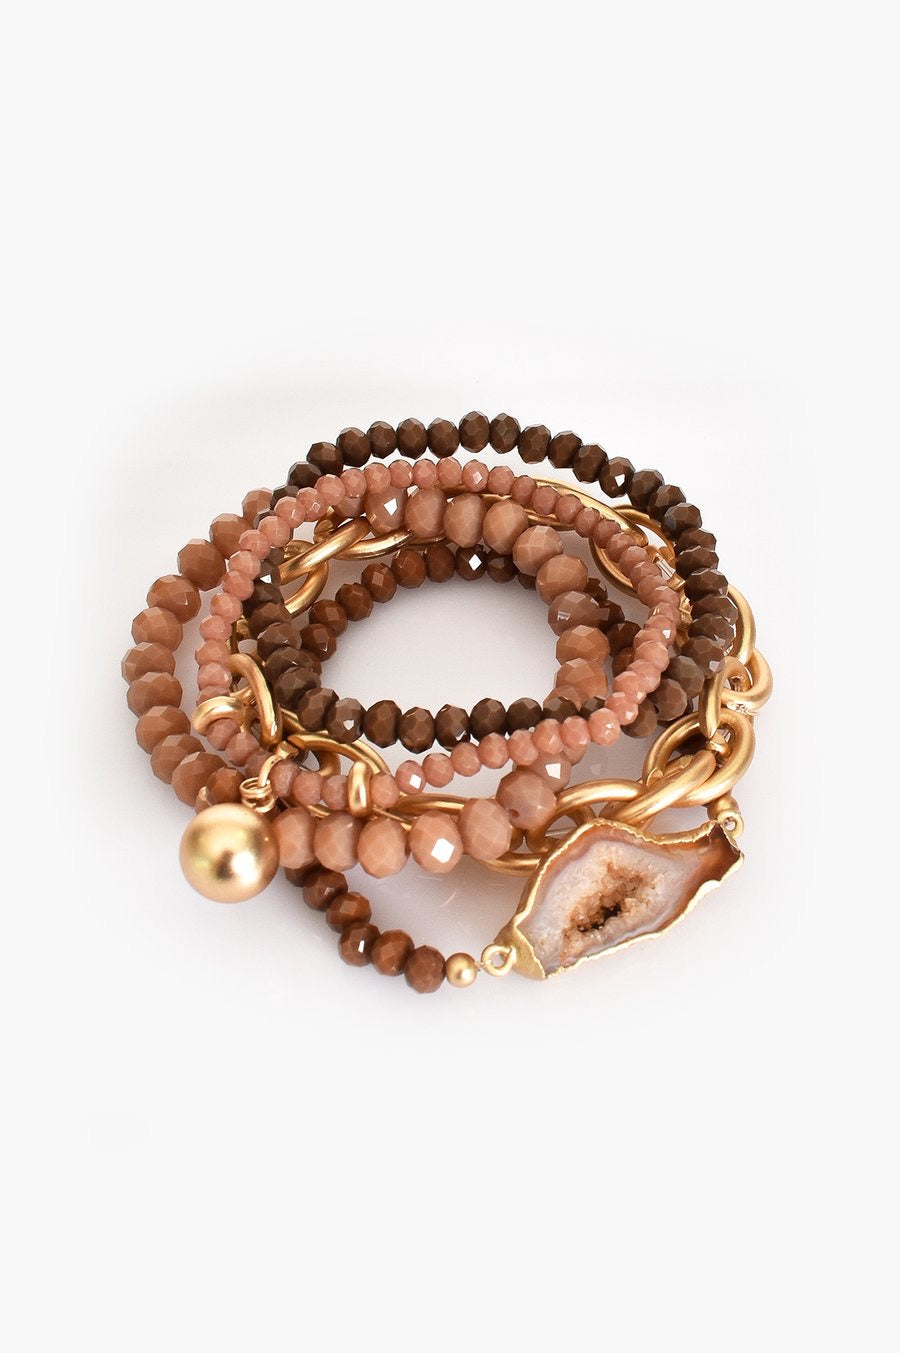 Beaded Multi-Strand Bracelet - Tan